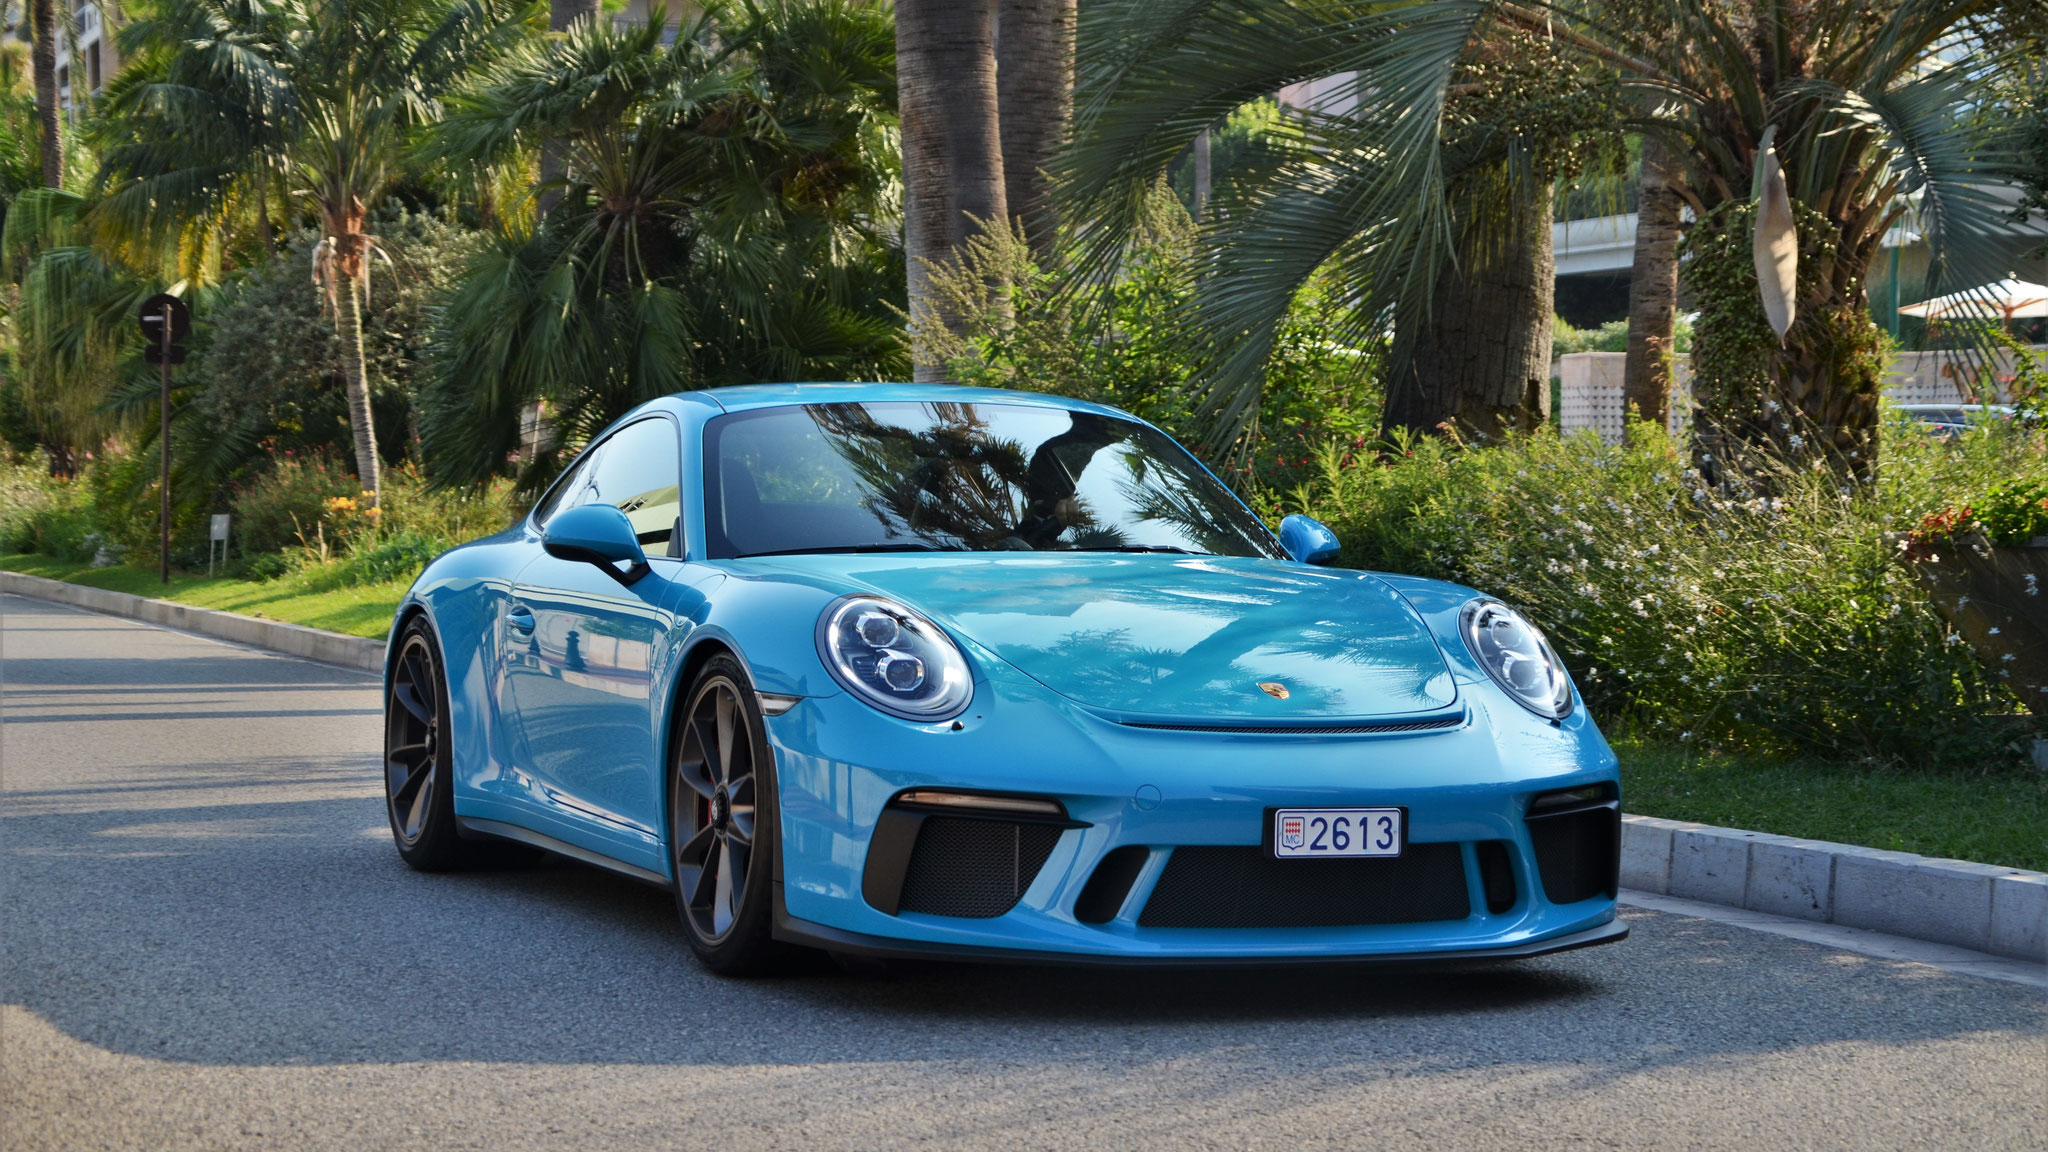 Porsche 991 GT3 Touring Package - 2613 (MC)